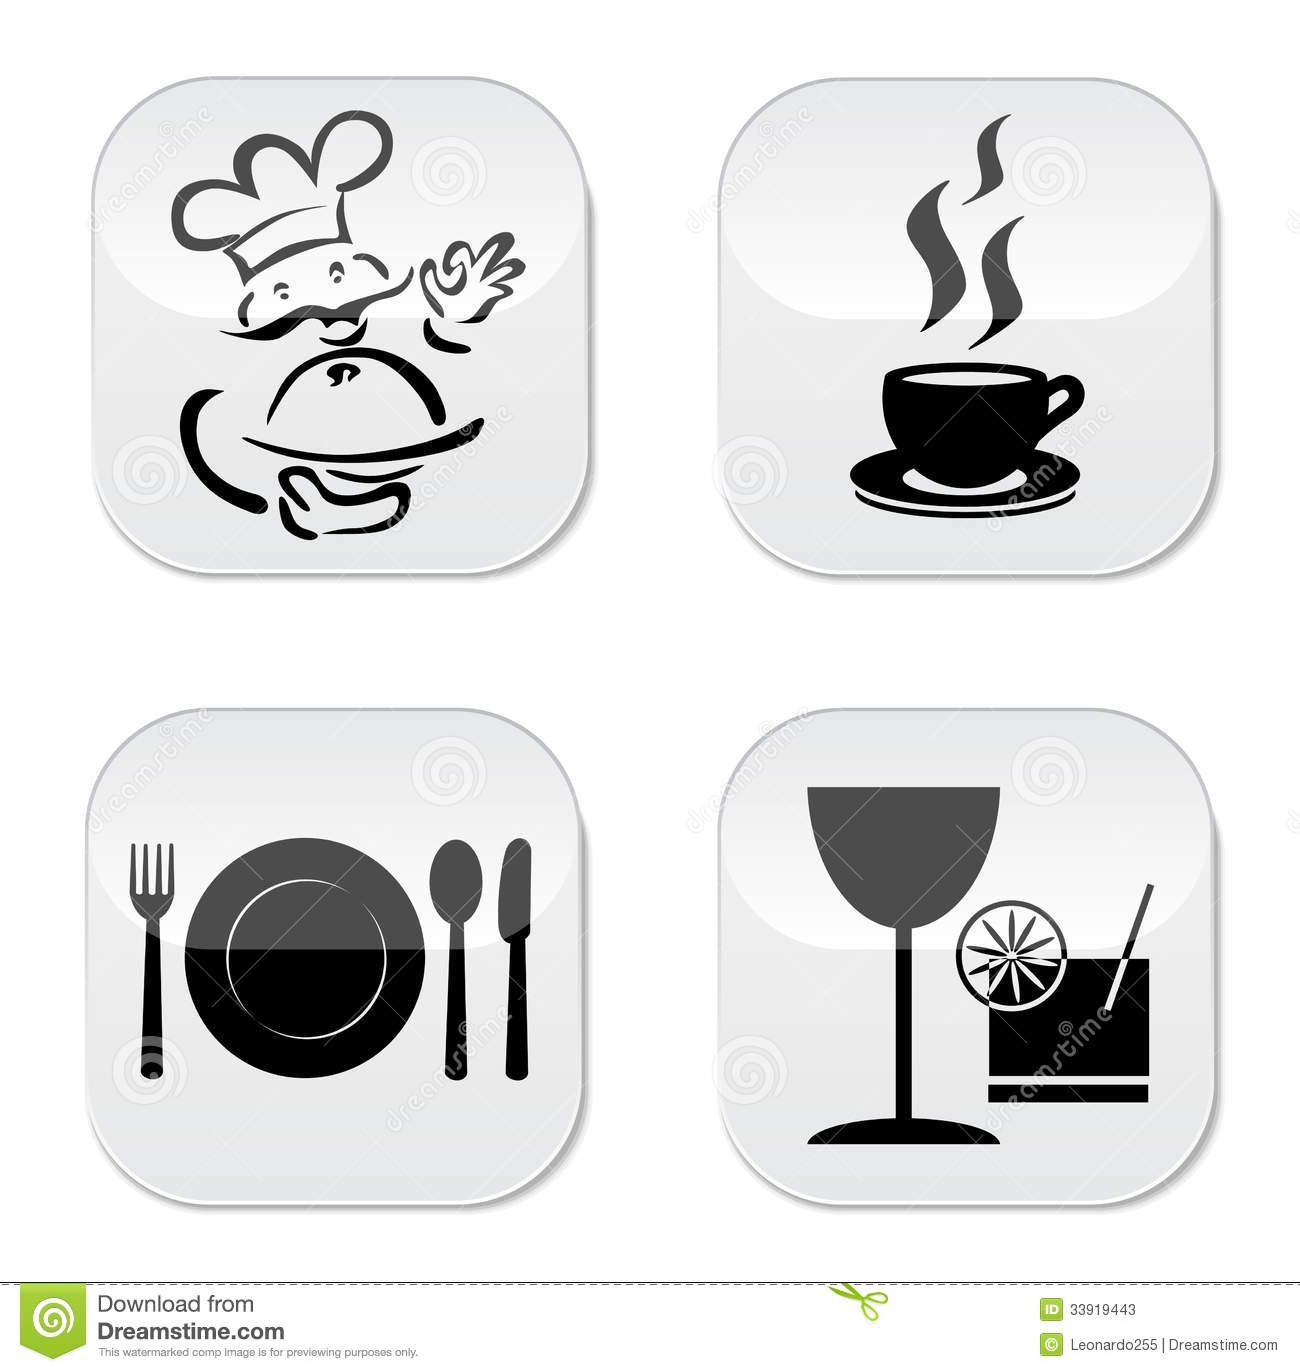 Restaurant Icon Stock Photos Image 33919443 : restaurant icon icons eps 33919443 from www.dreamstime.com size 1300 x 1372 jpeg 96kB